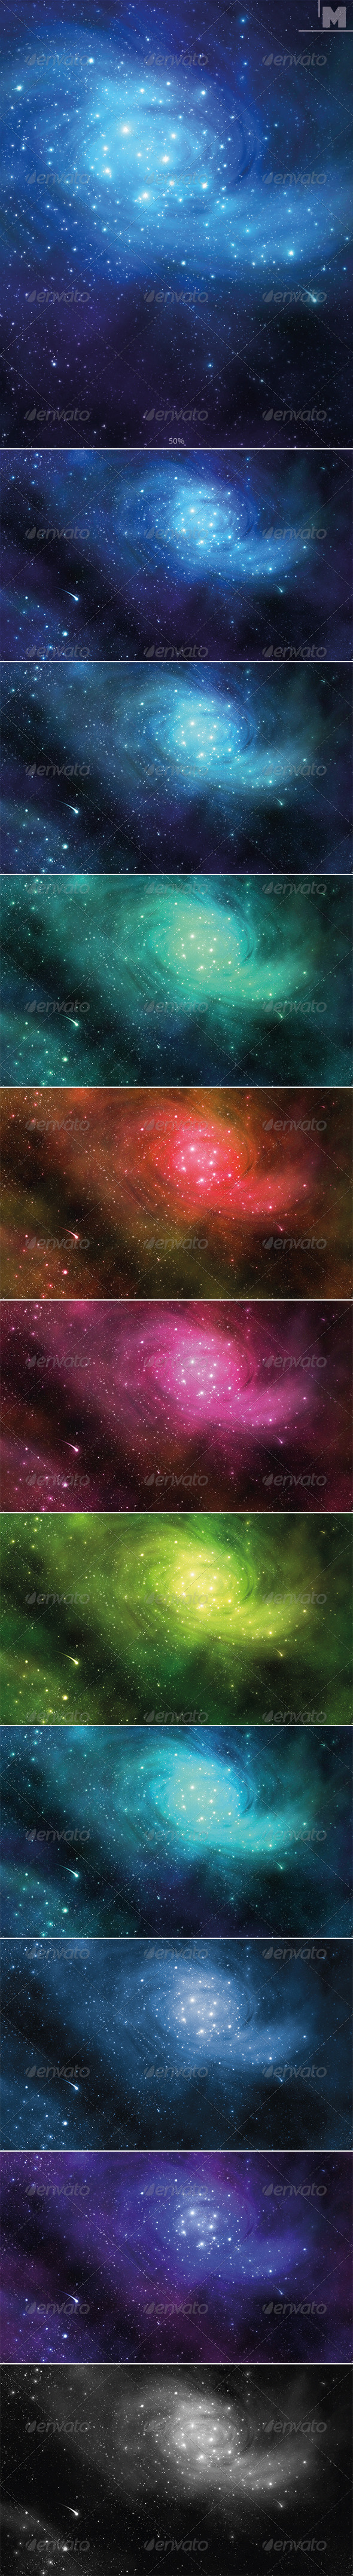 GraphicRiver Space Background 7901117